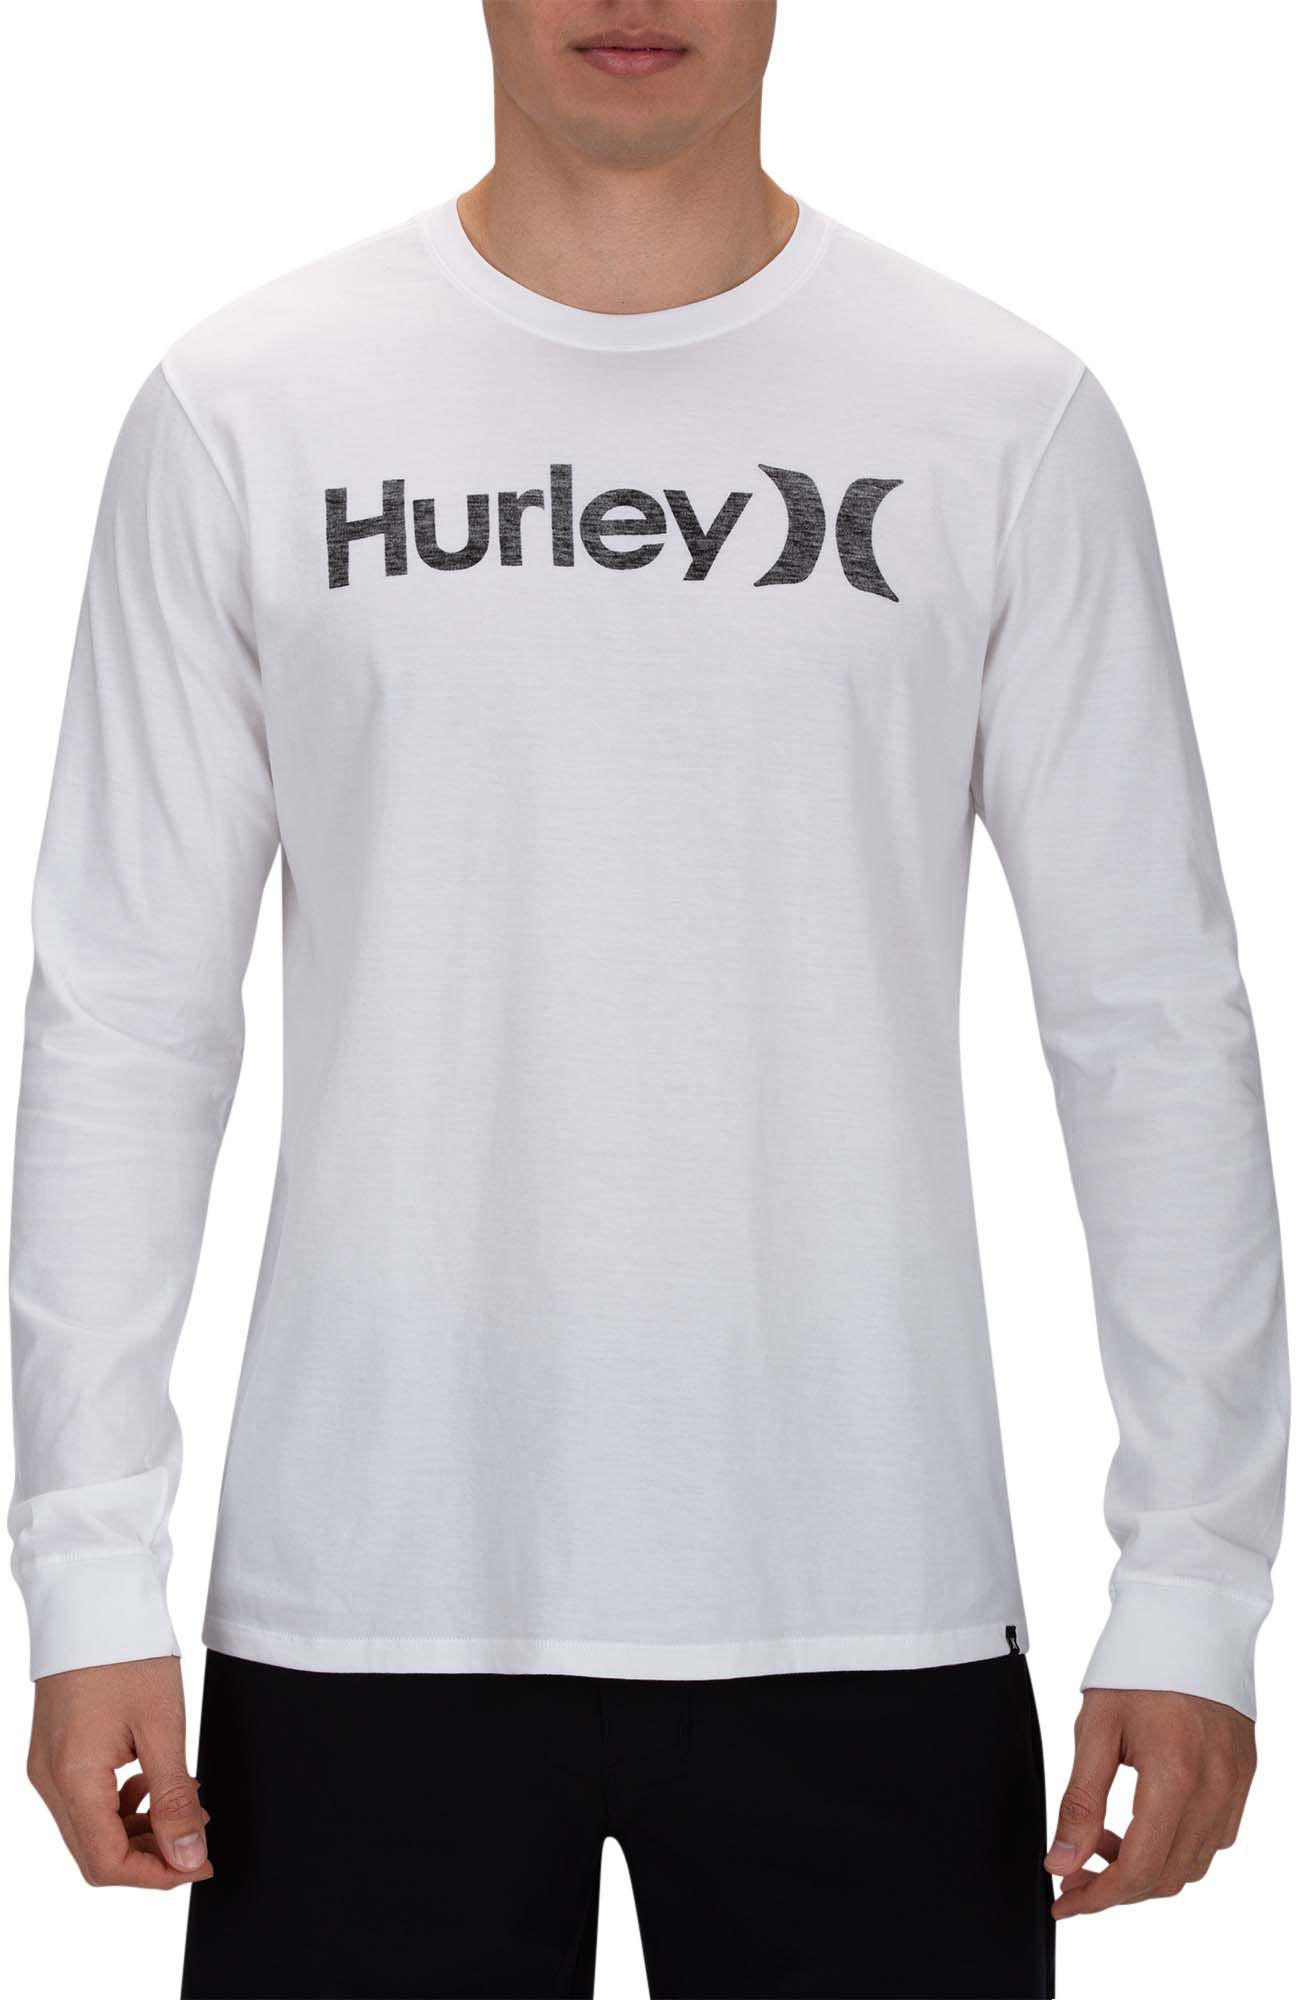 f3dacfd6 Lyst - Hurley One & Only Long Sleeve Sun Protection Rashguard in ...